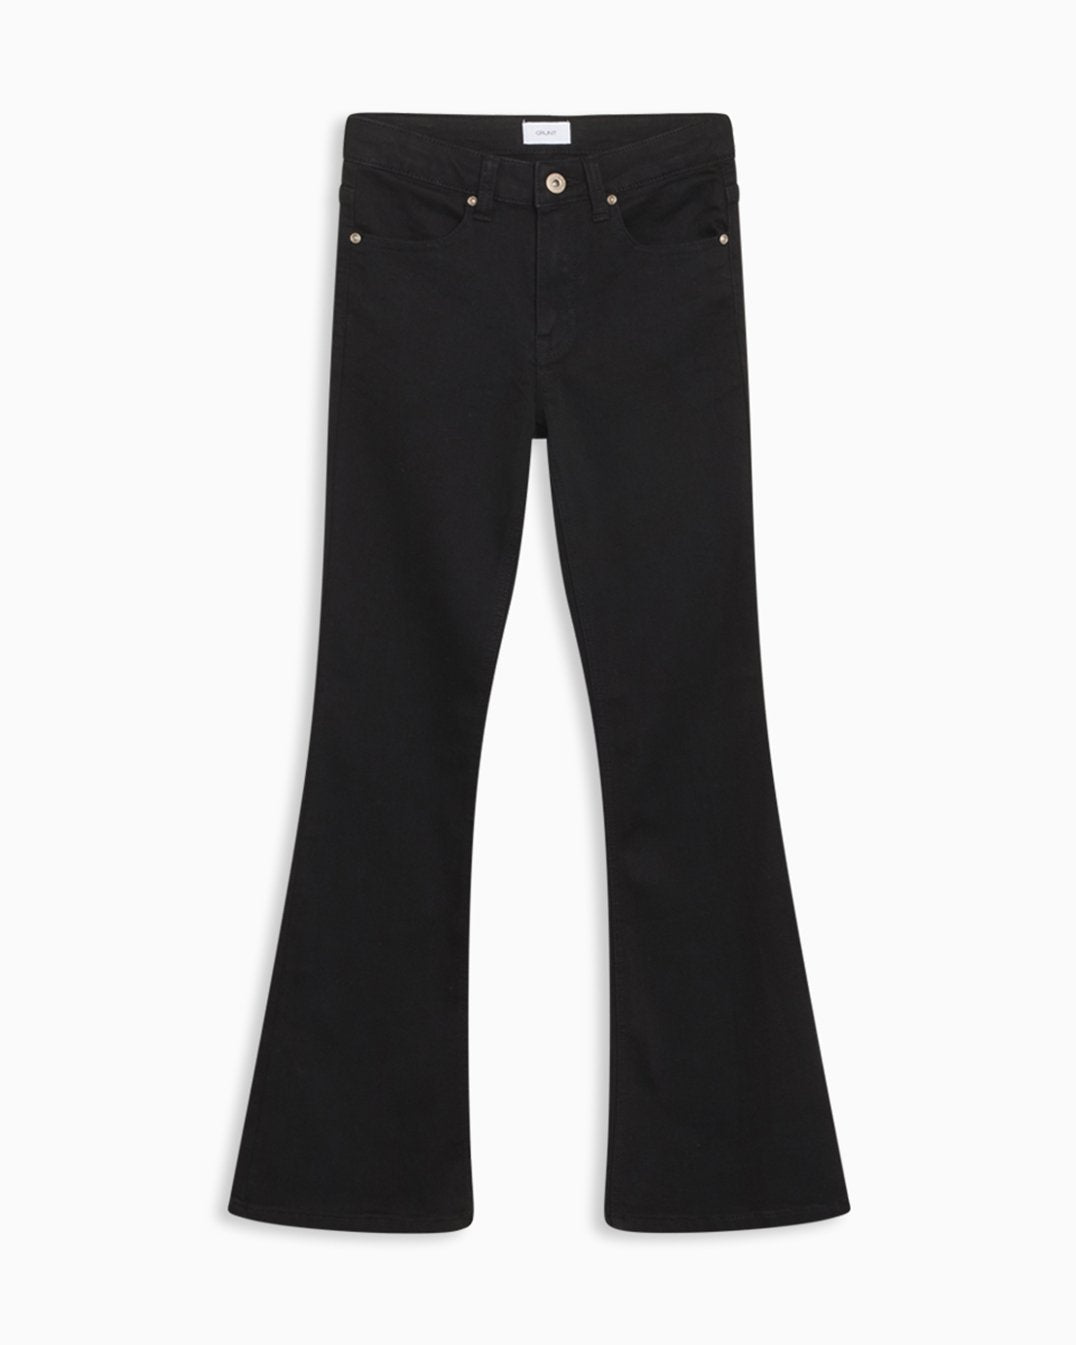 GRUNT / Flair black jeans